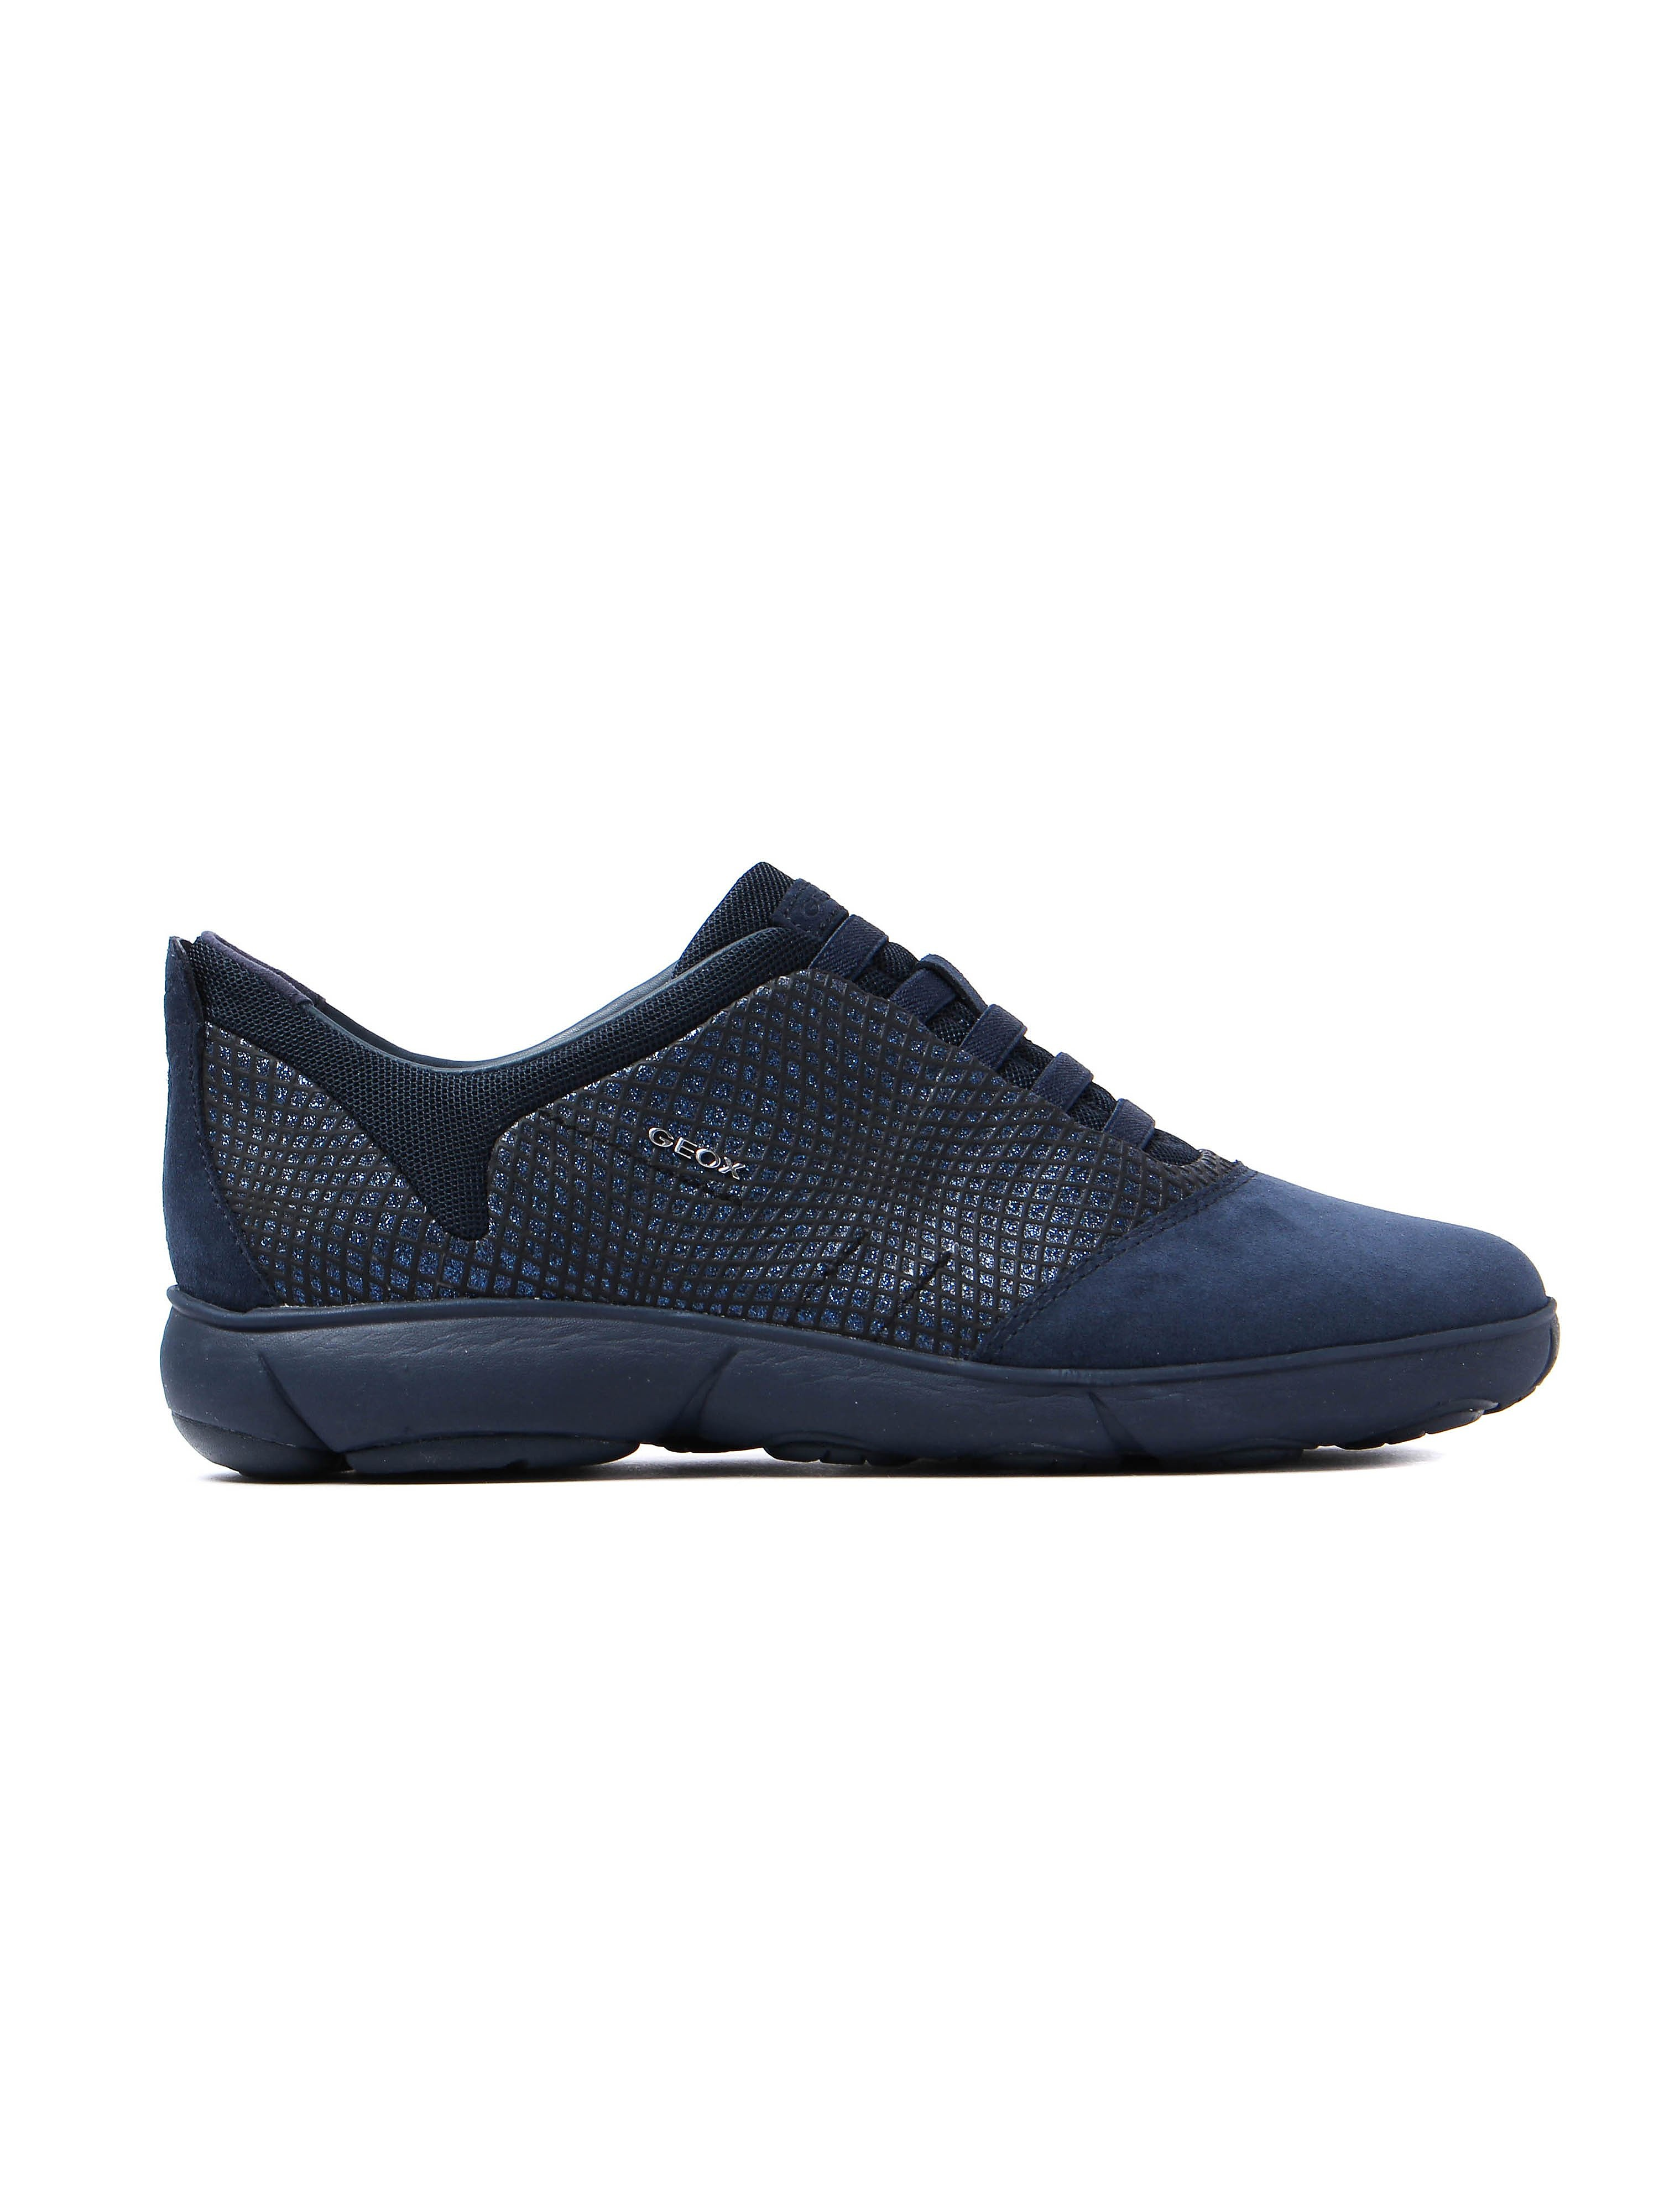 Geox Women's Nebula Textile Slip On Trainers - Navy